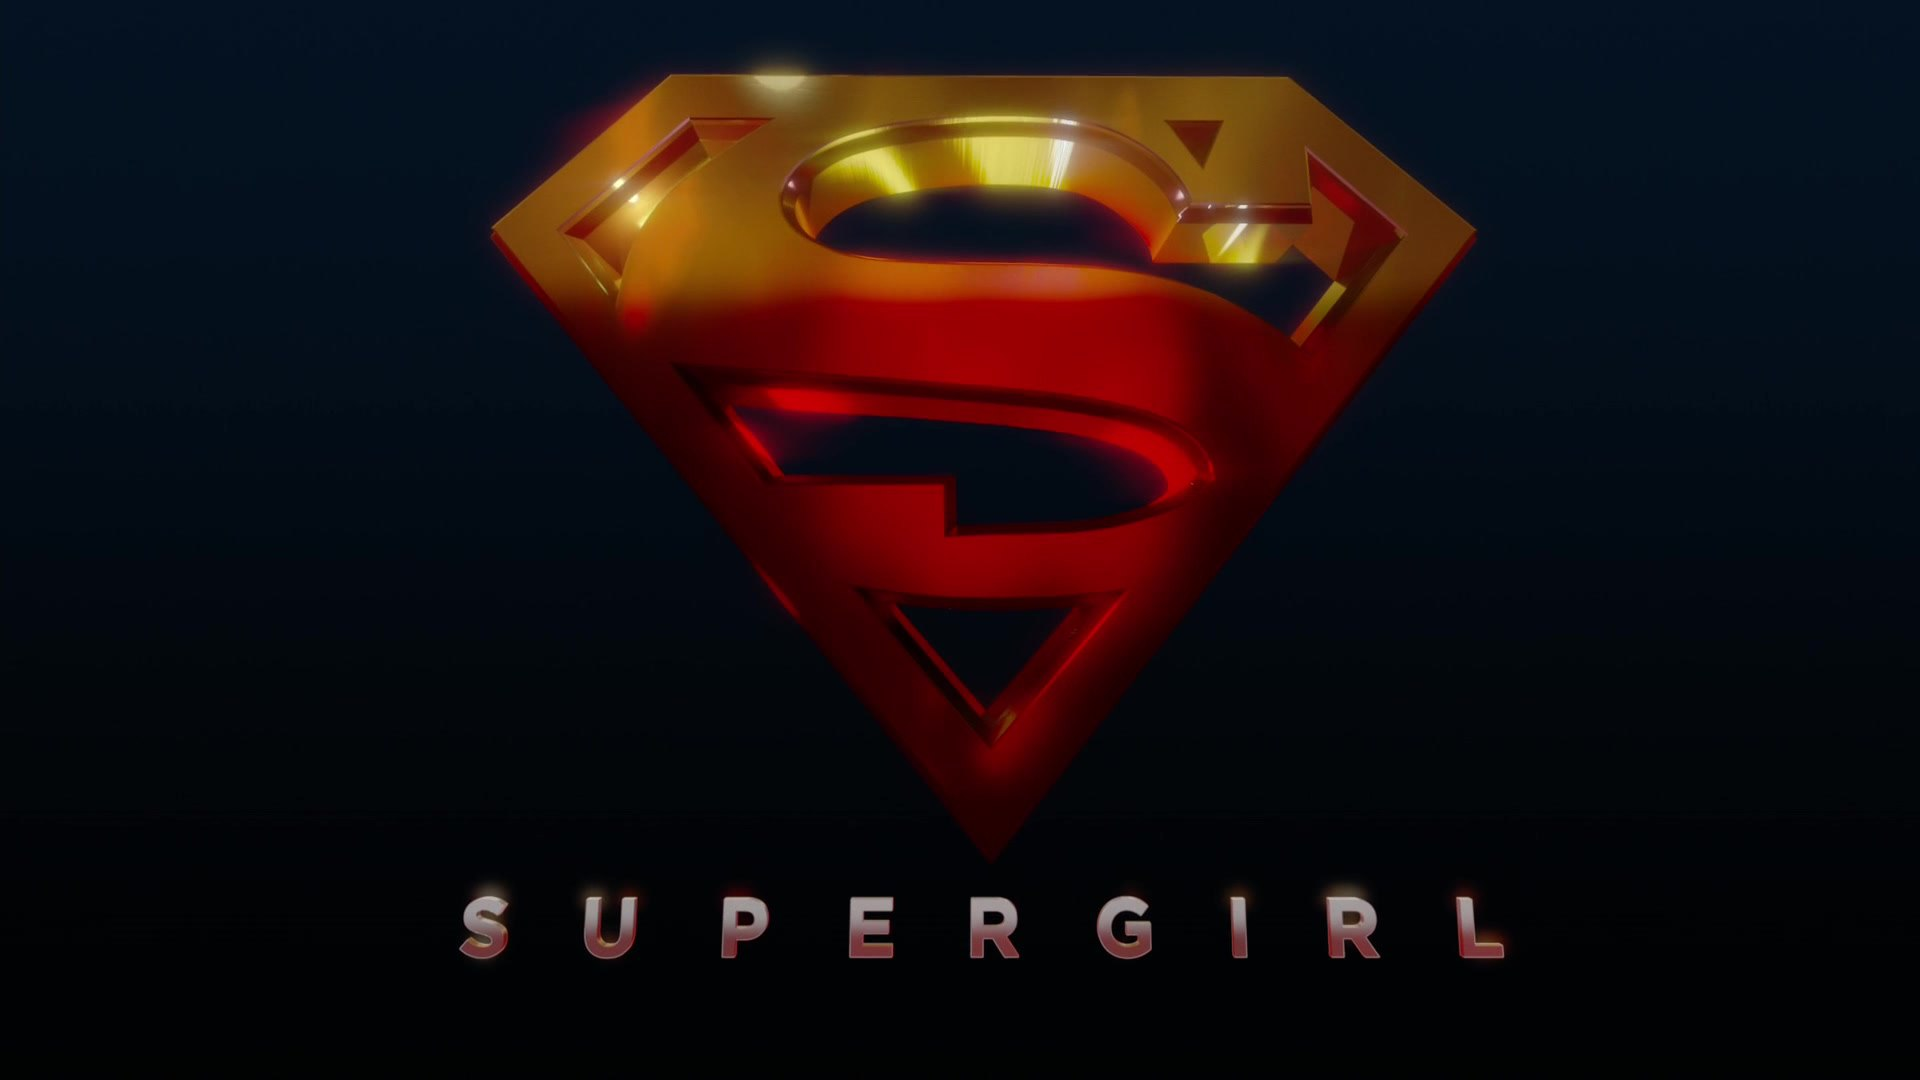 Supergirl (TV Series) Episode: Better Angels